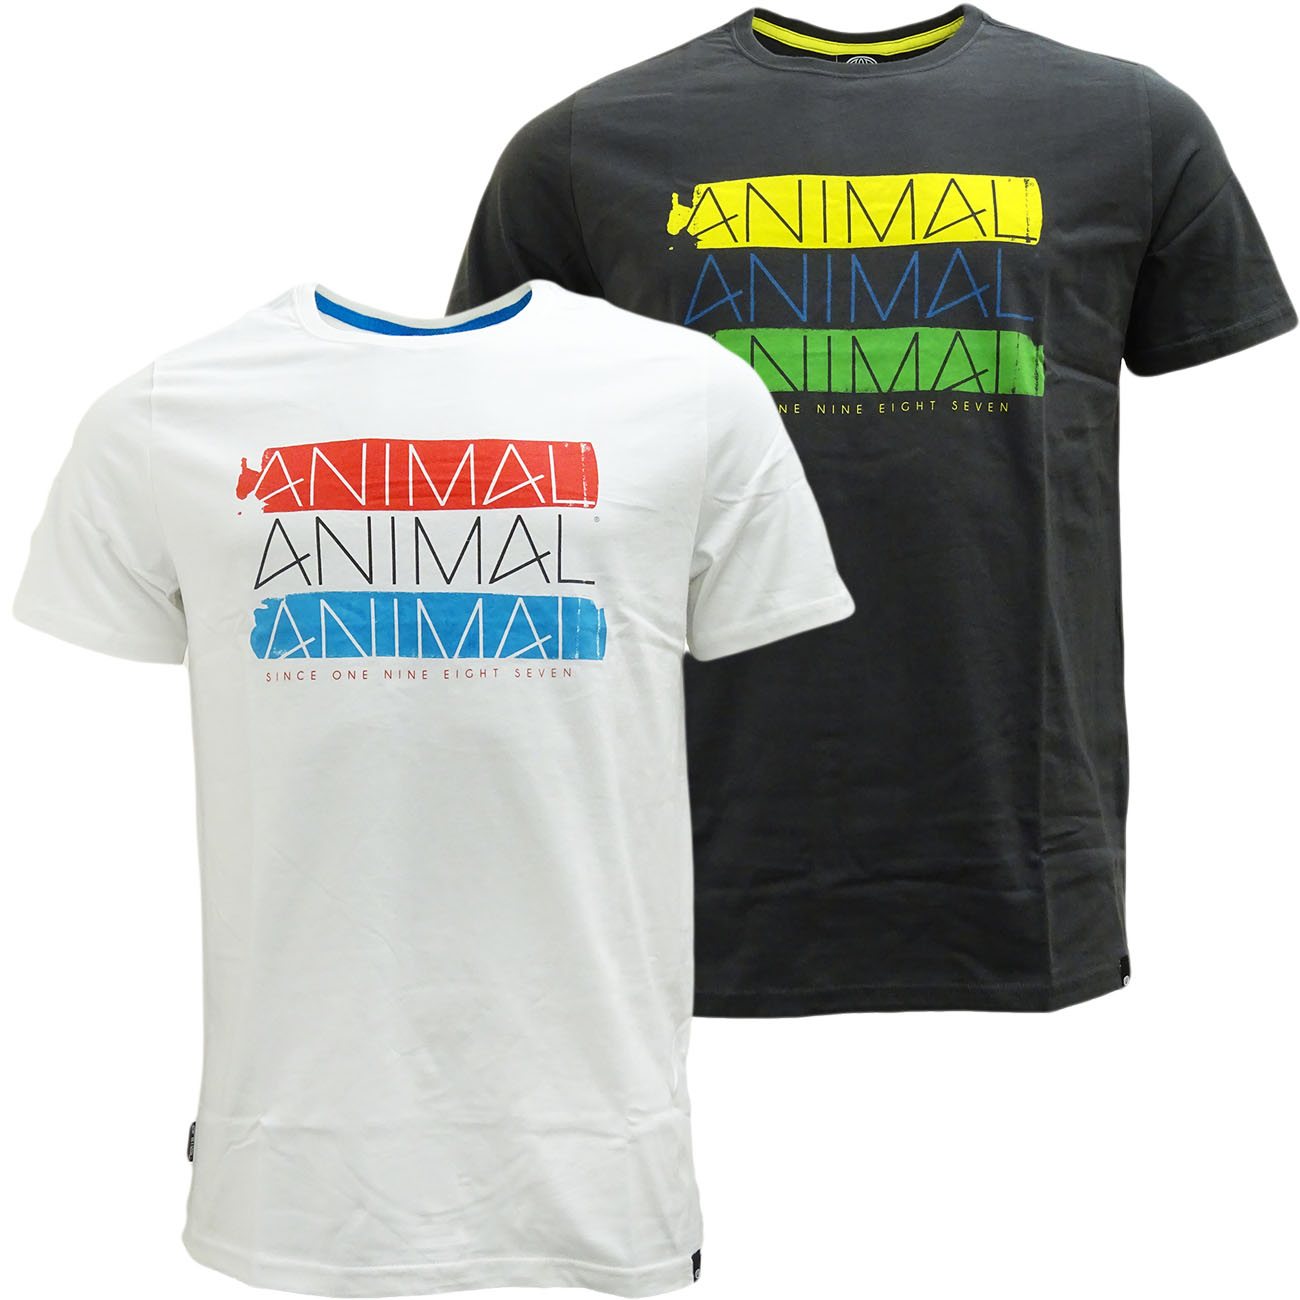 Animal t shirt short sleeve custom fit t shirts by for Custom fit t shirts